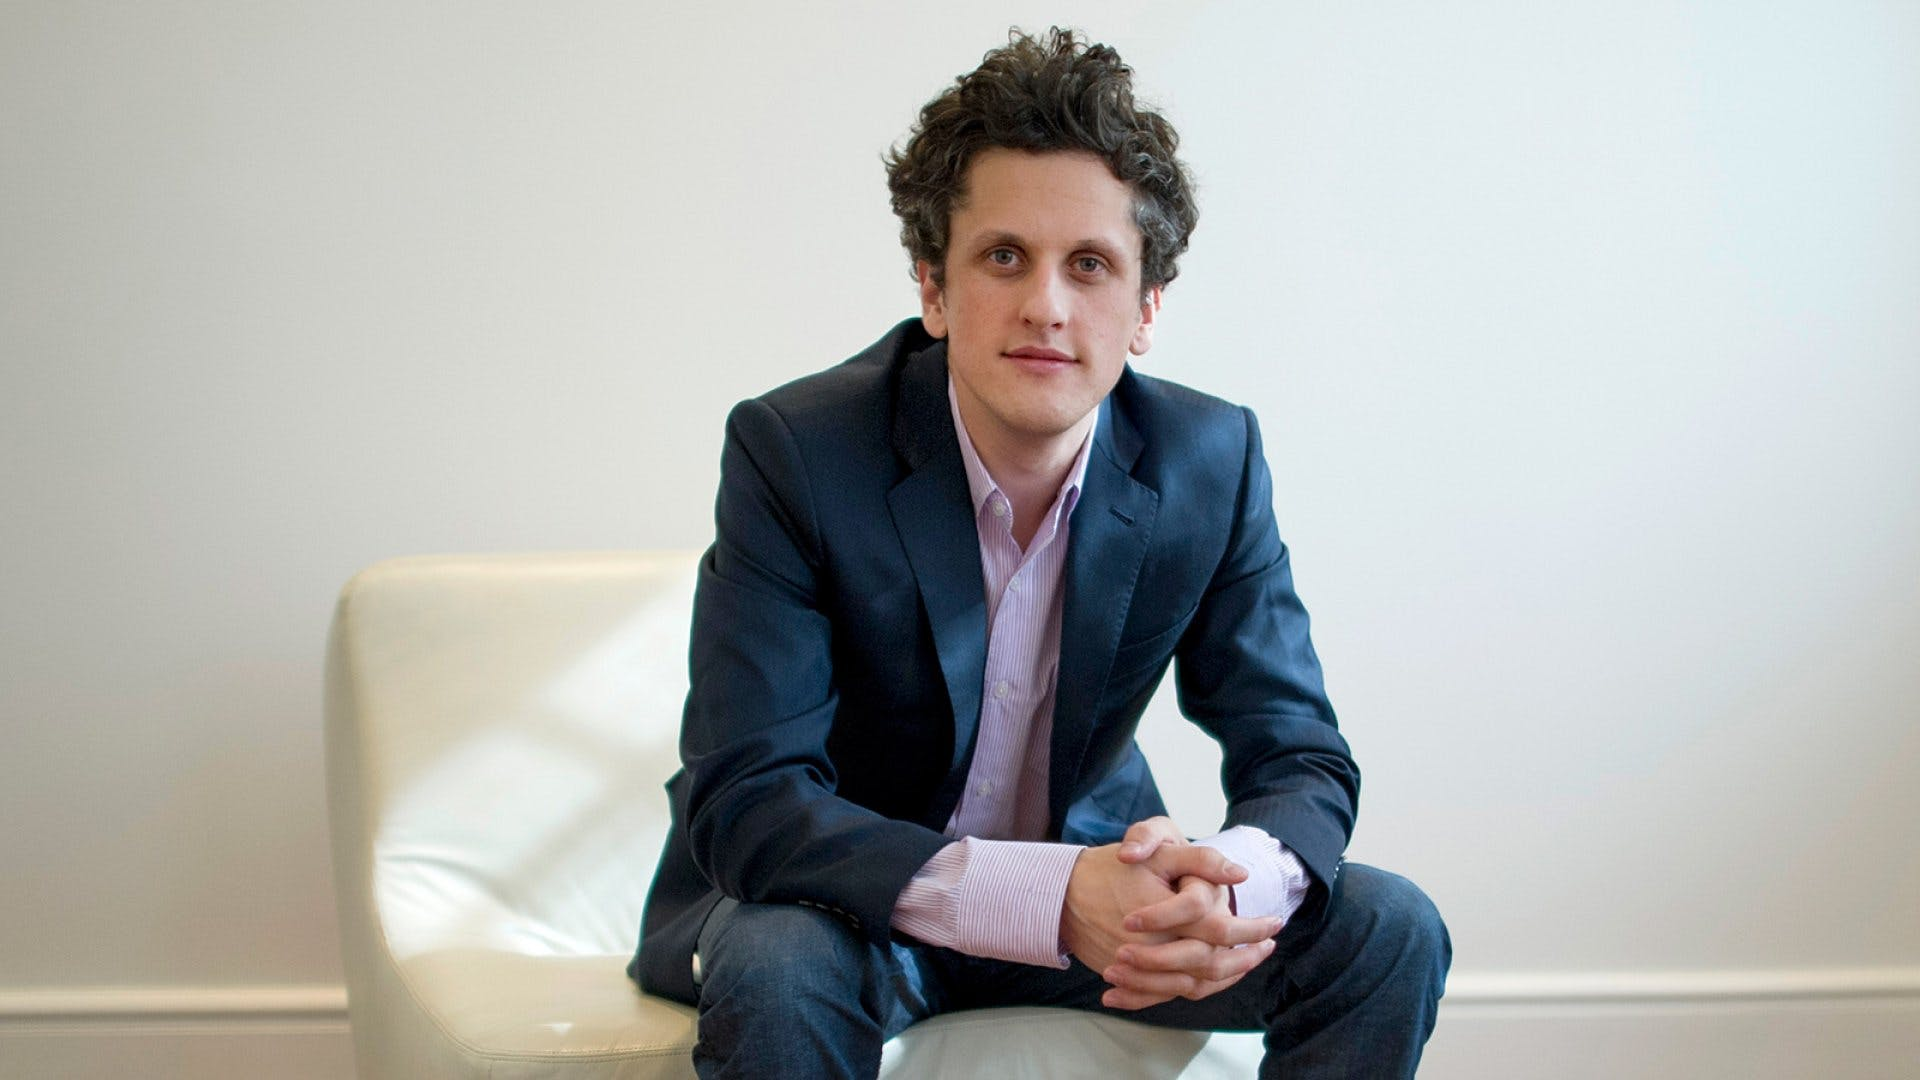 AARON LEVIE: I HAVE A LOT OF FAULTS, I OFTEN INTERRUPT IN MEETINGS, I TALK TOO FAST